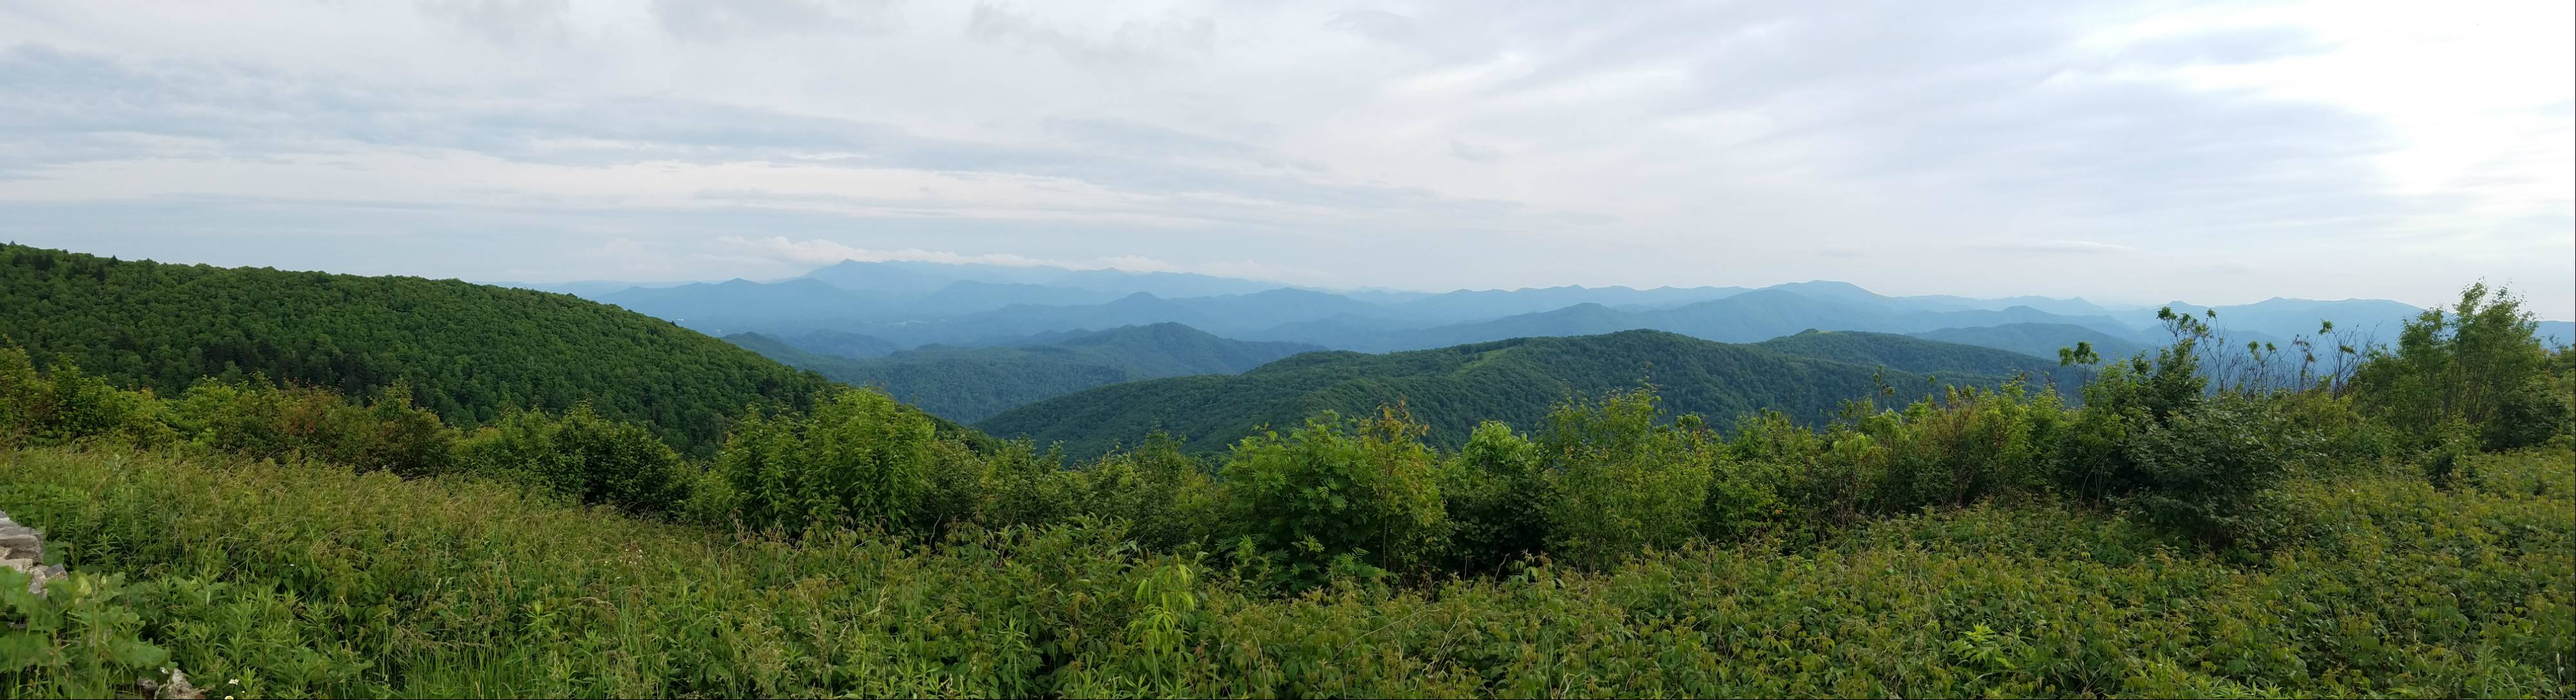 Picture of skyline of mountains at Beauty Spot on hiking trail in Tennessee.